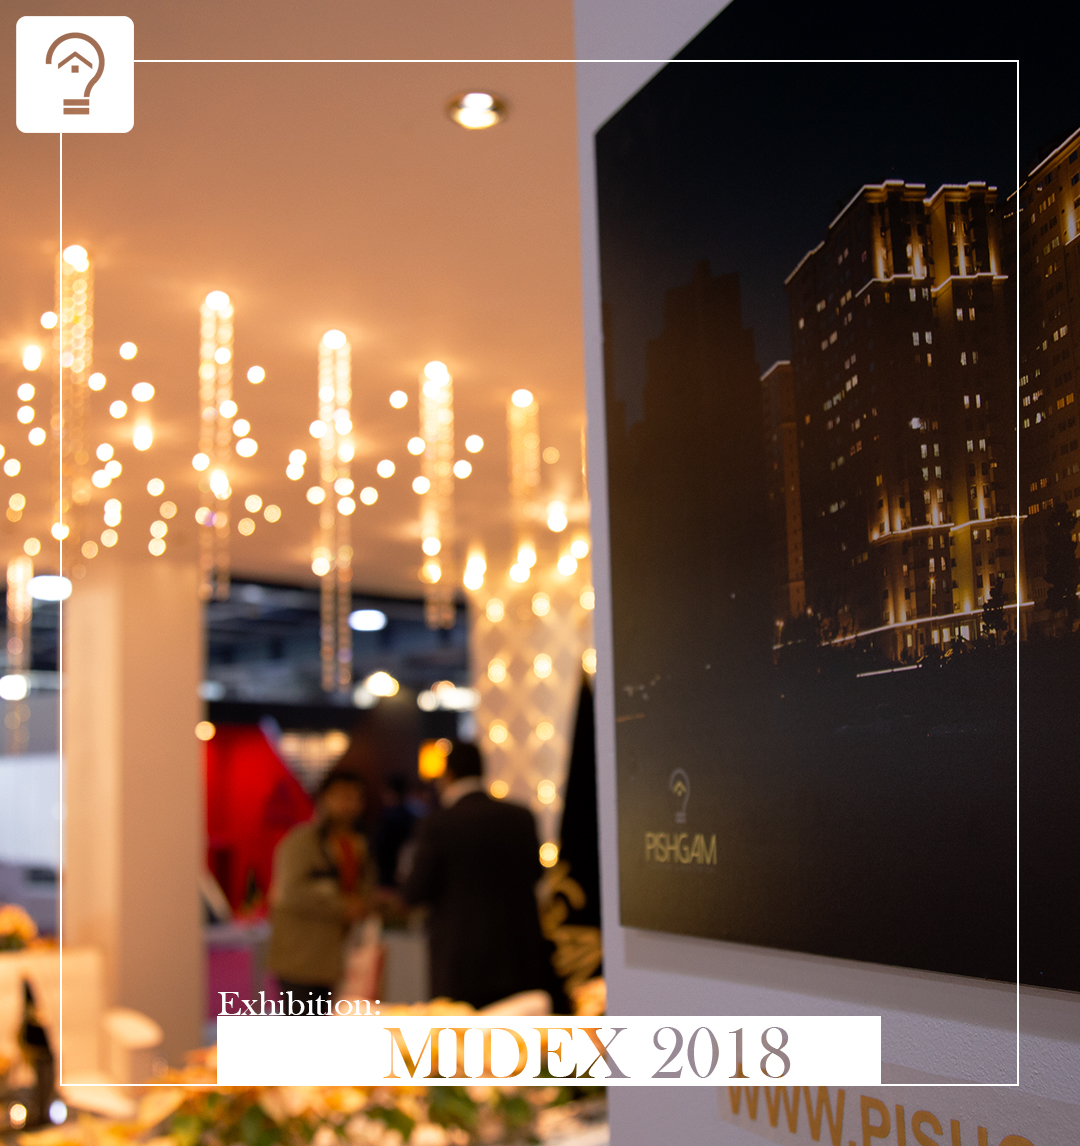 نمایشگاه MIDEX EXHIBITION 2018